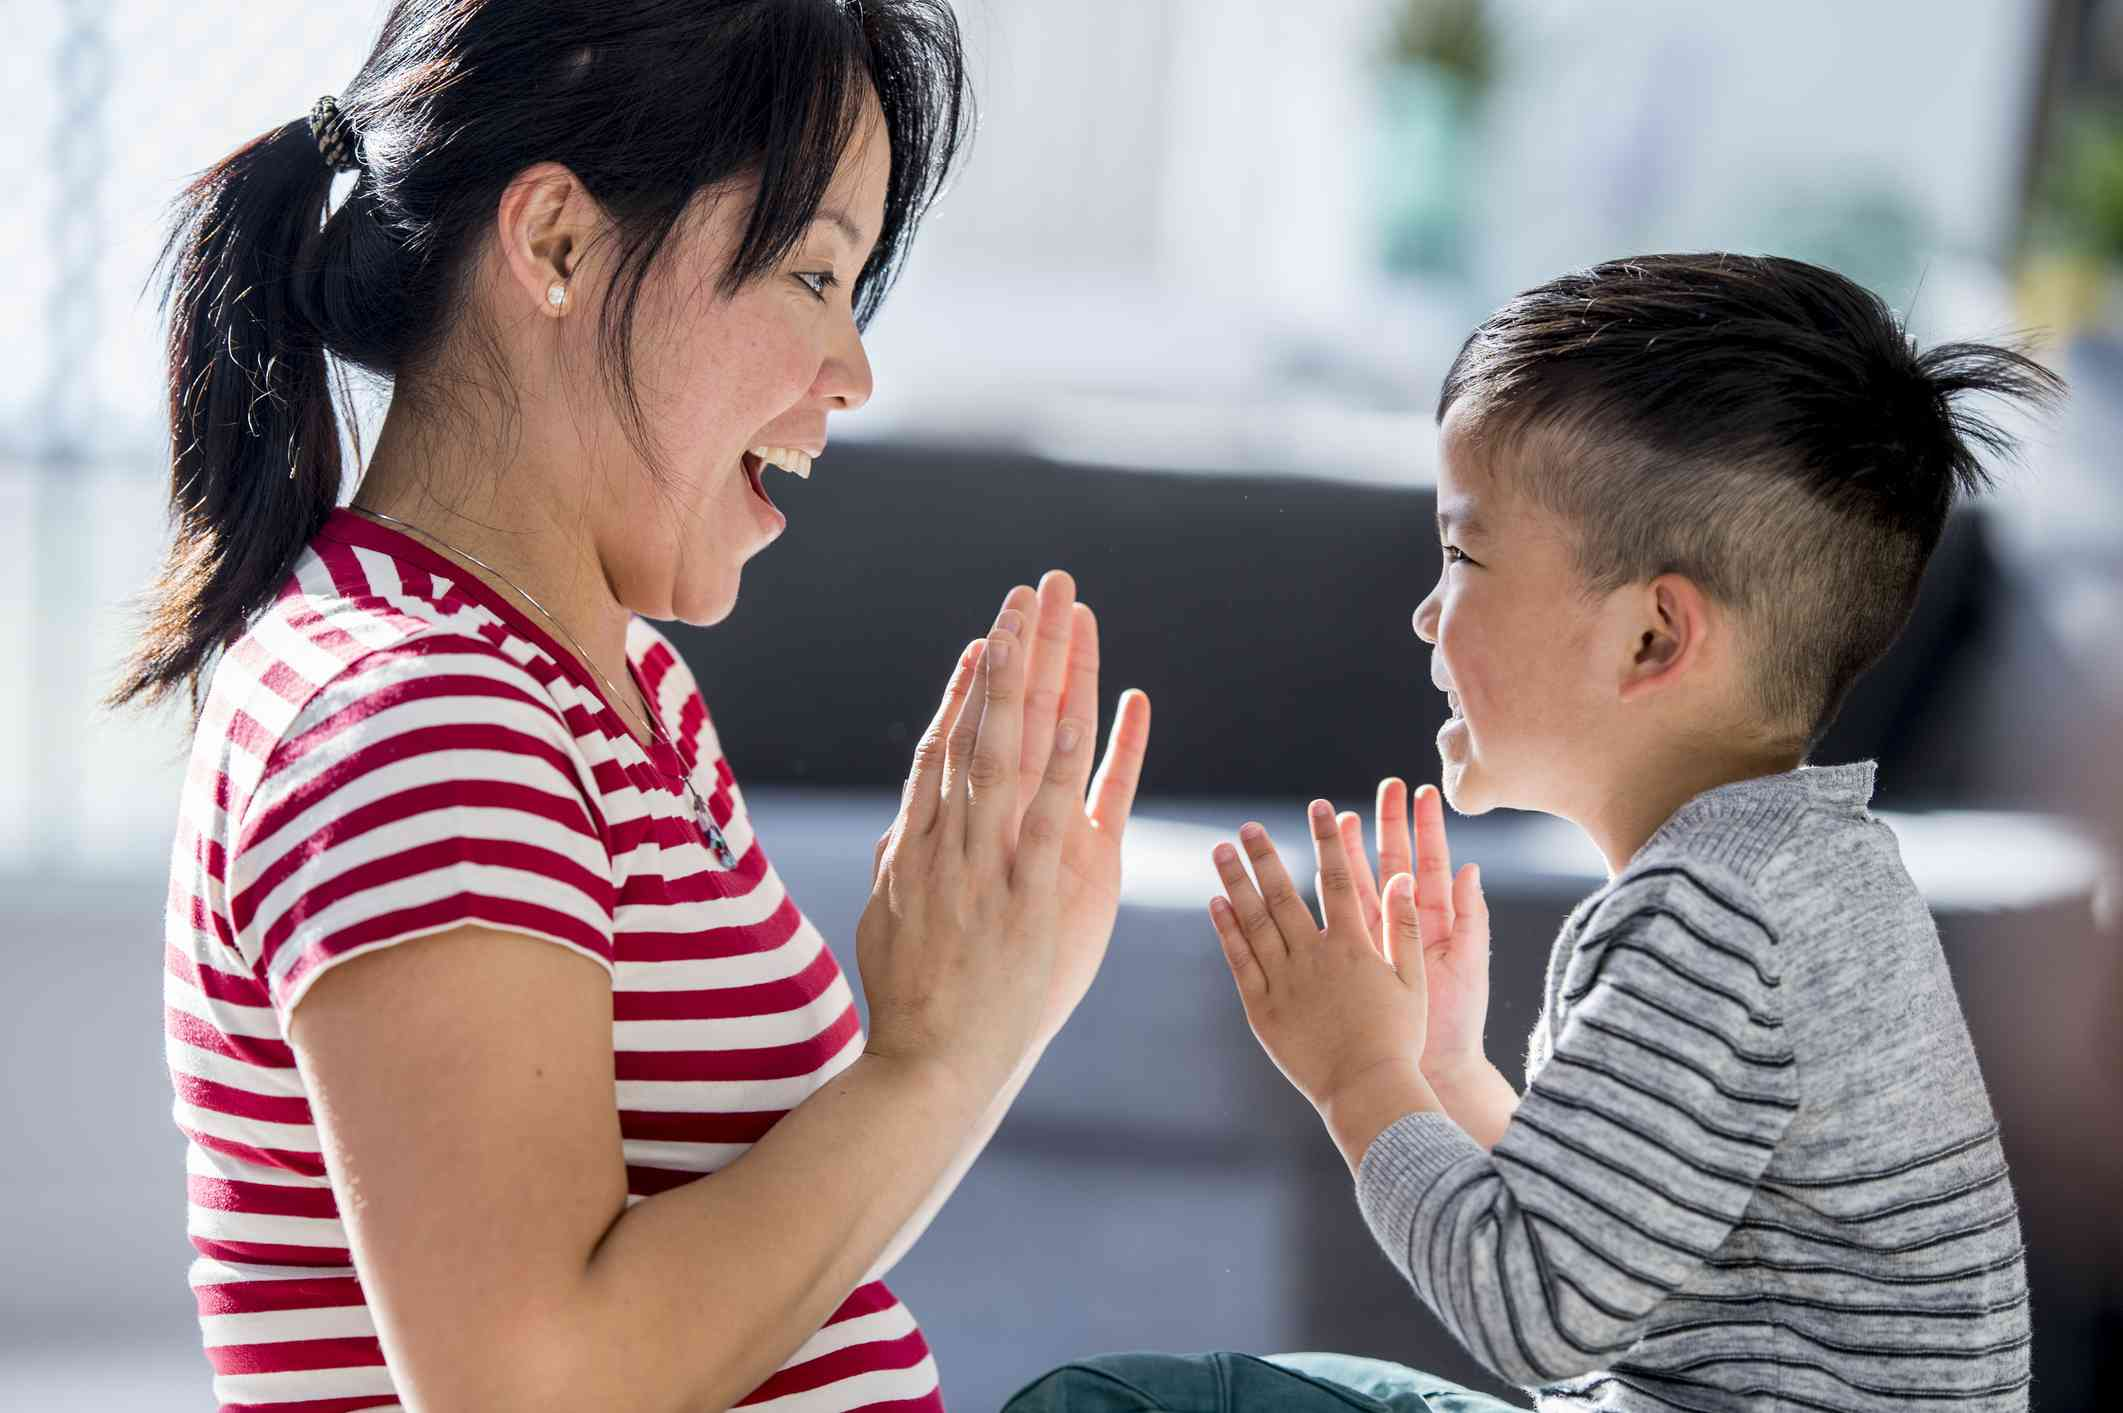 Mother and son playing clapping game